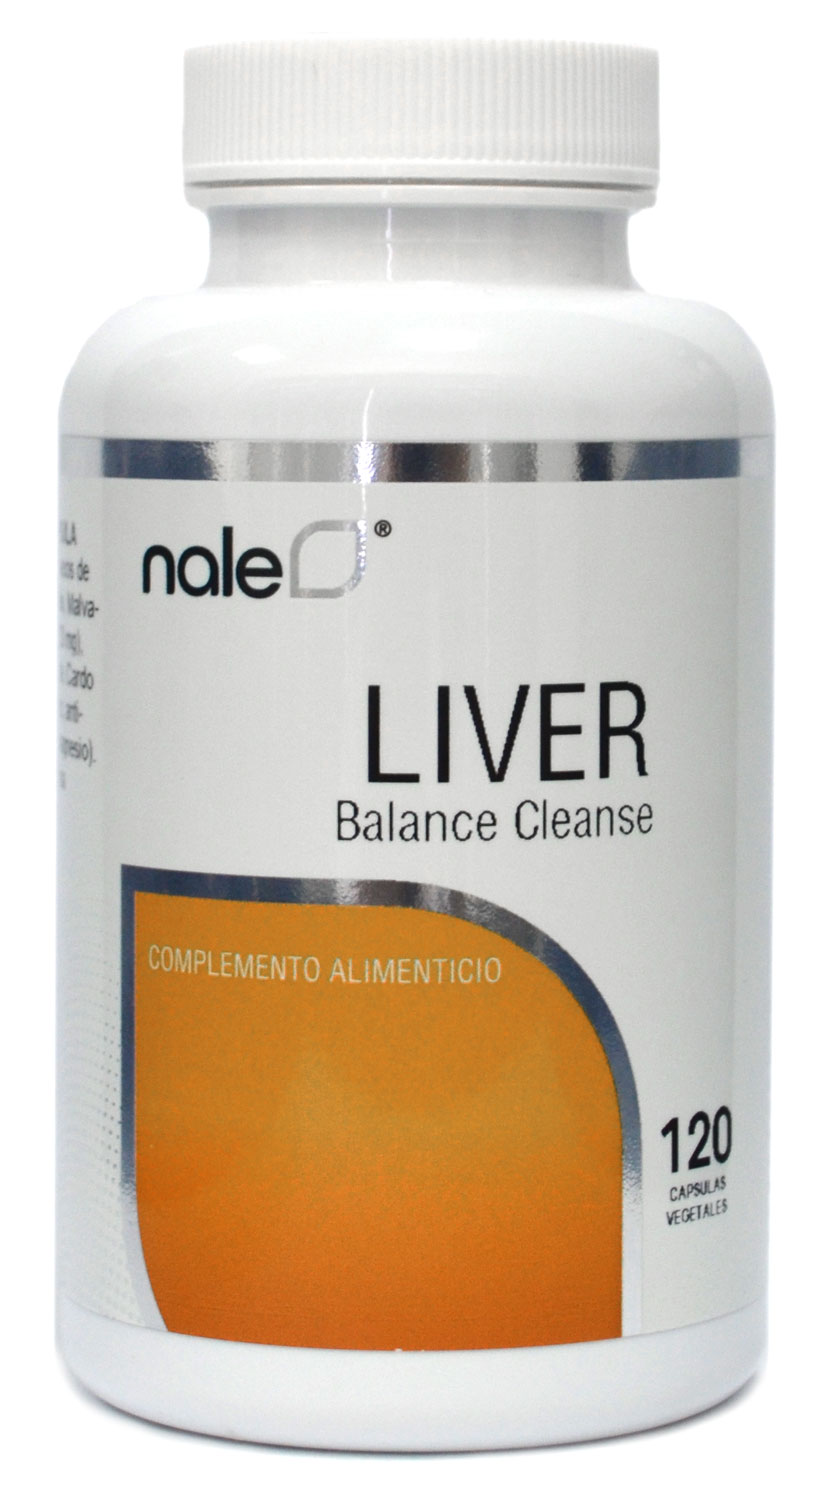 LIVER BALANCE CLEANSE 120 Caps 455 mg